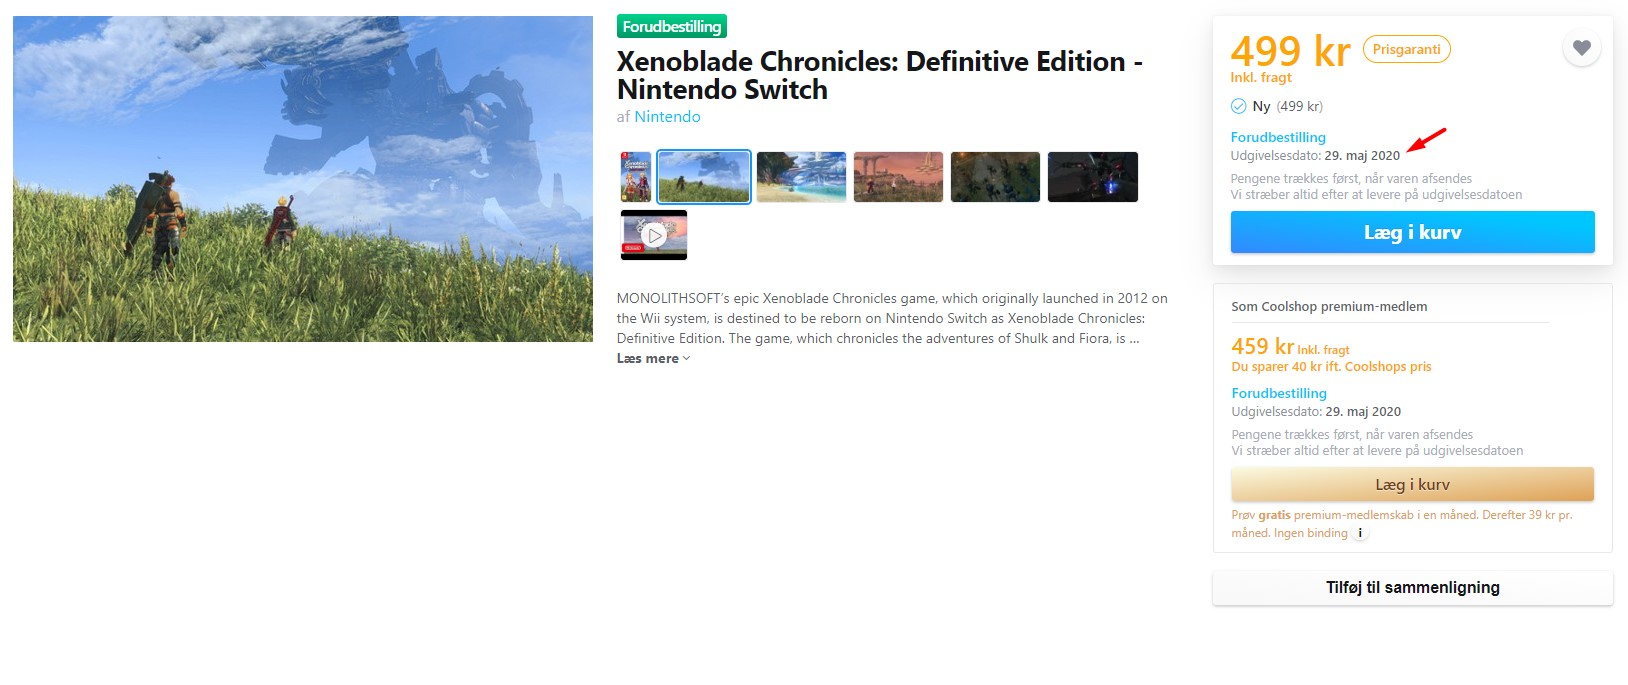 Xenoblade Chronicles: elenco dell'edizione definitiva